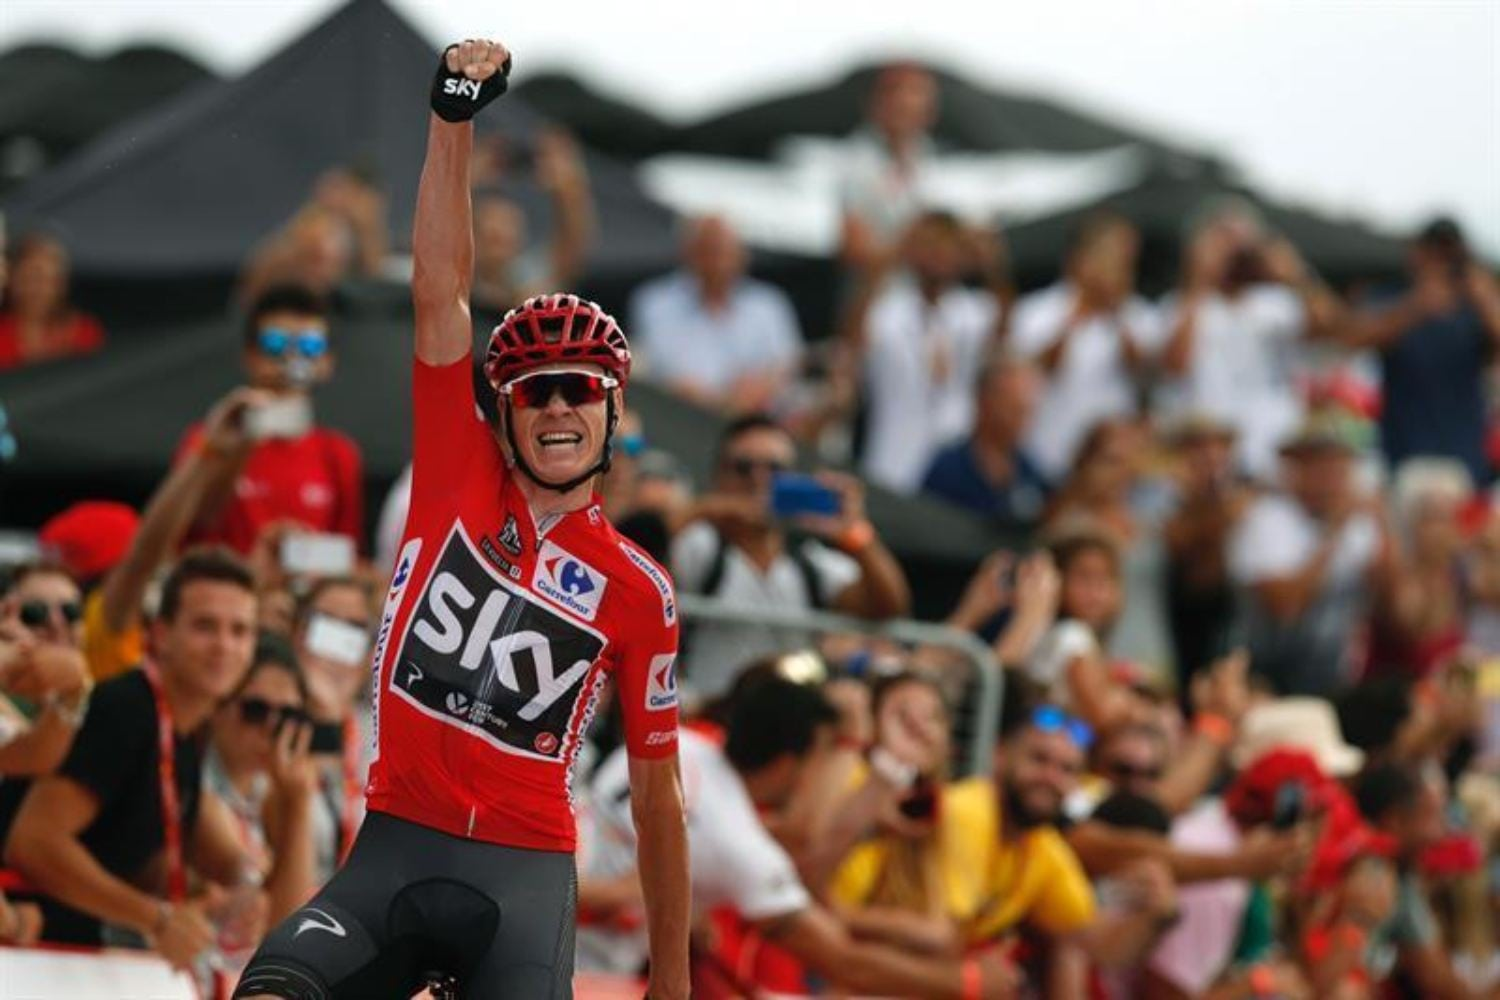 La UCI absuelve a Chris Froome